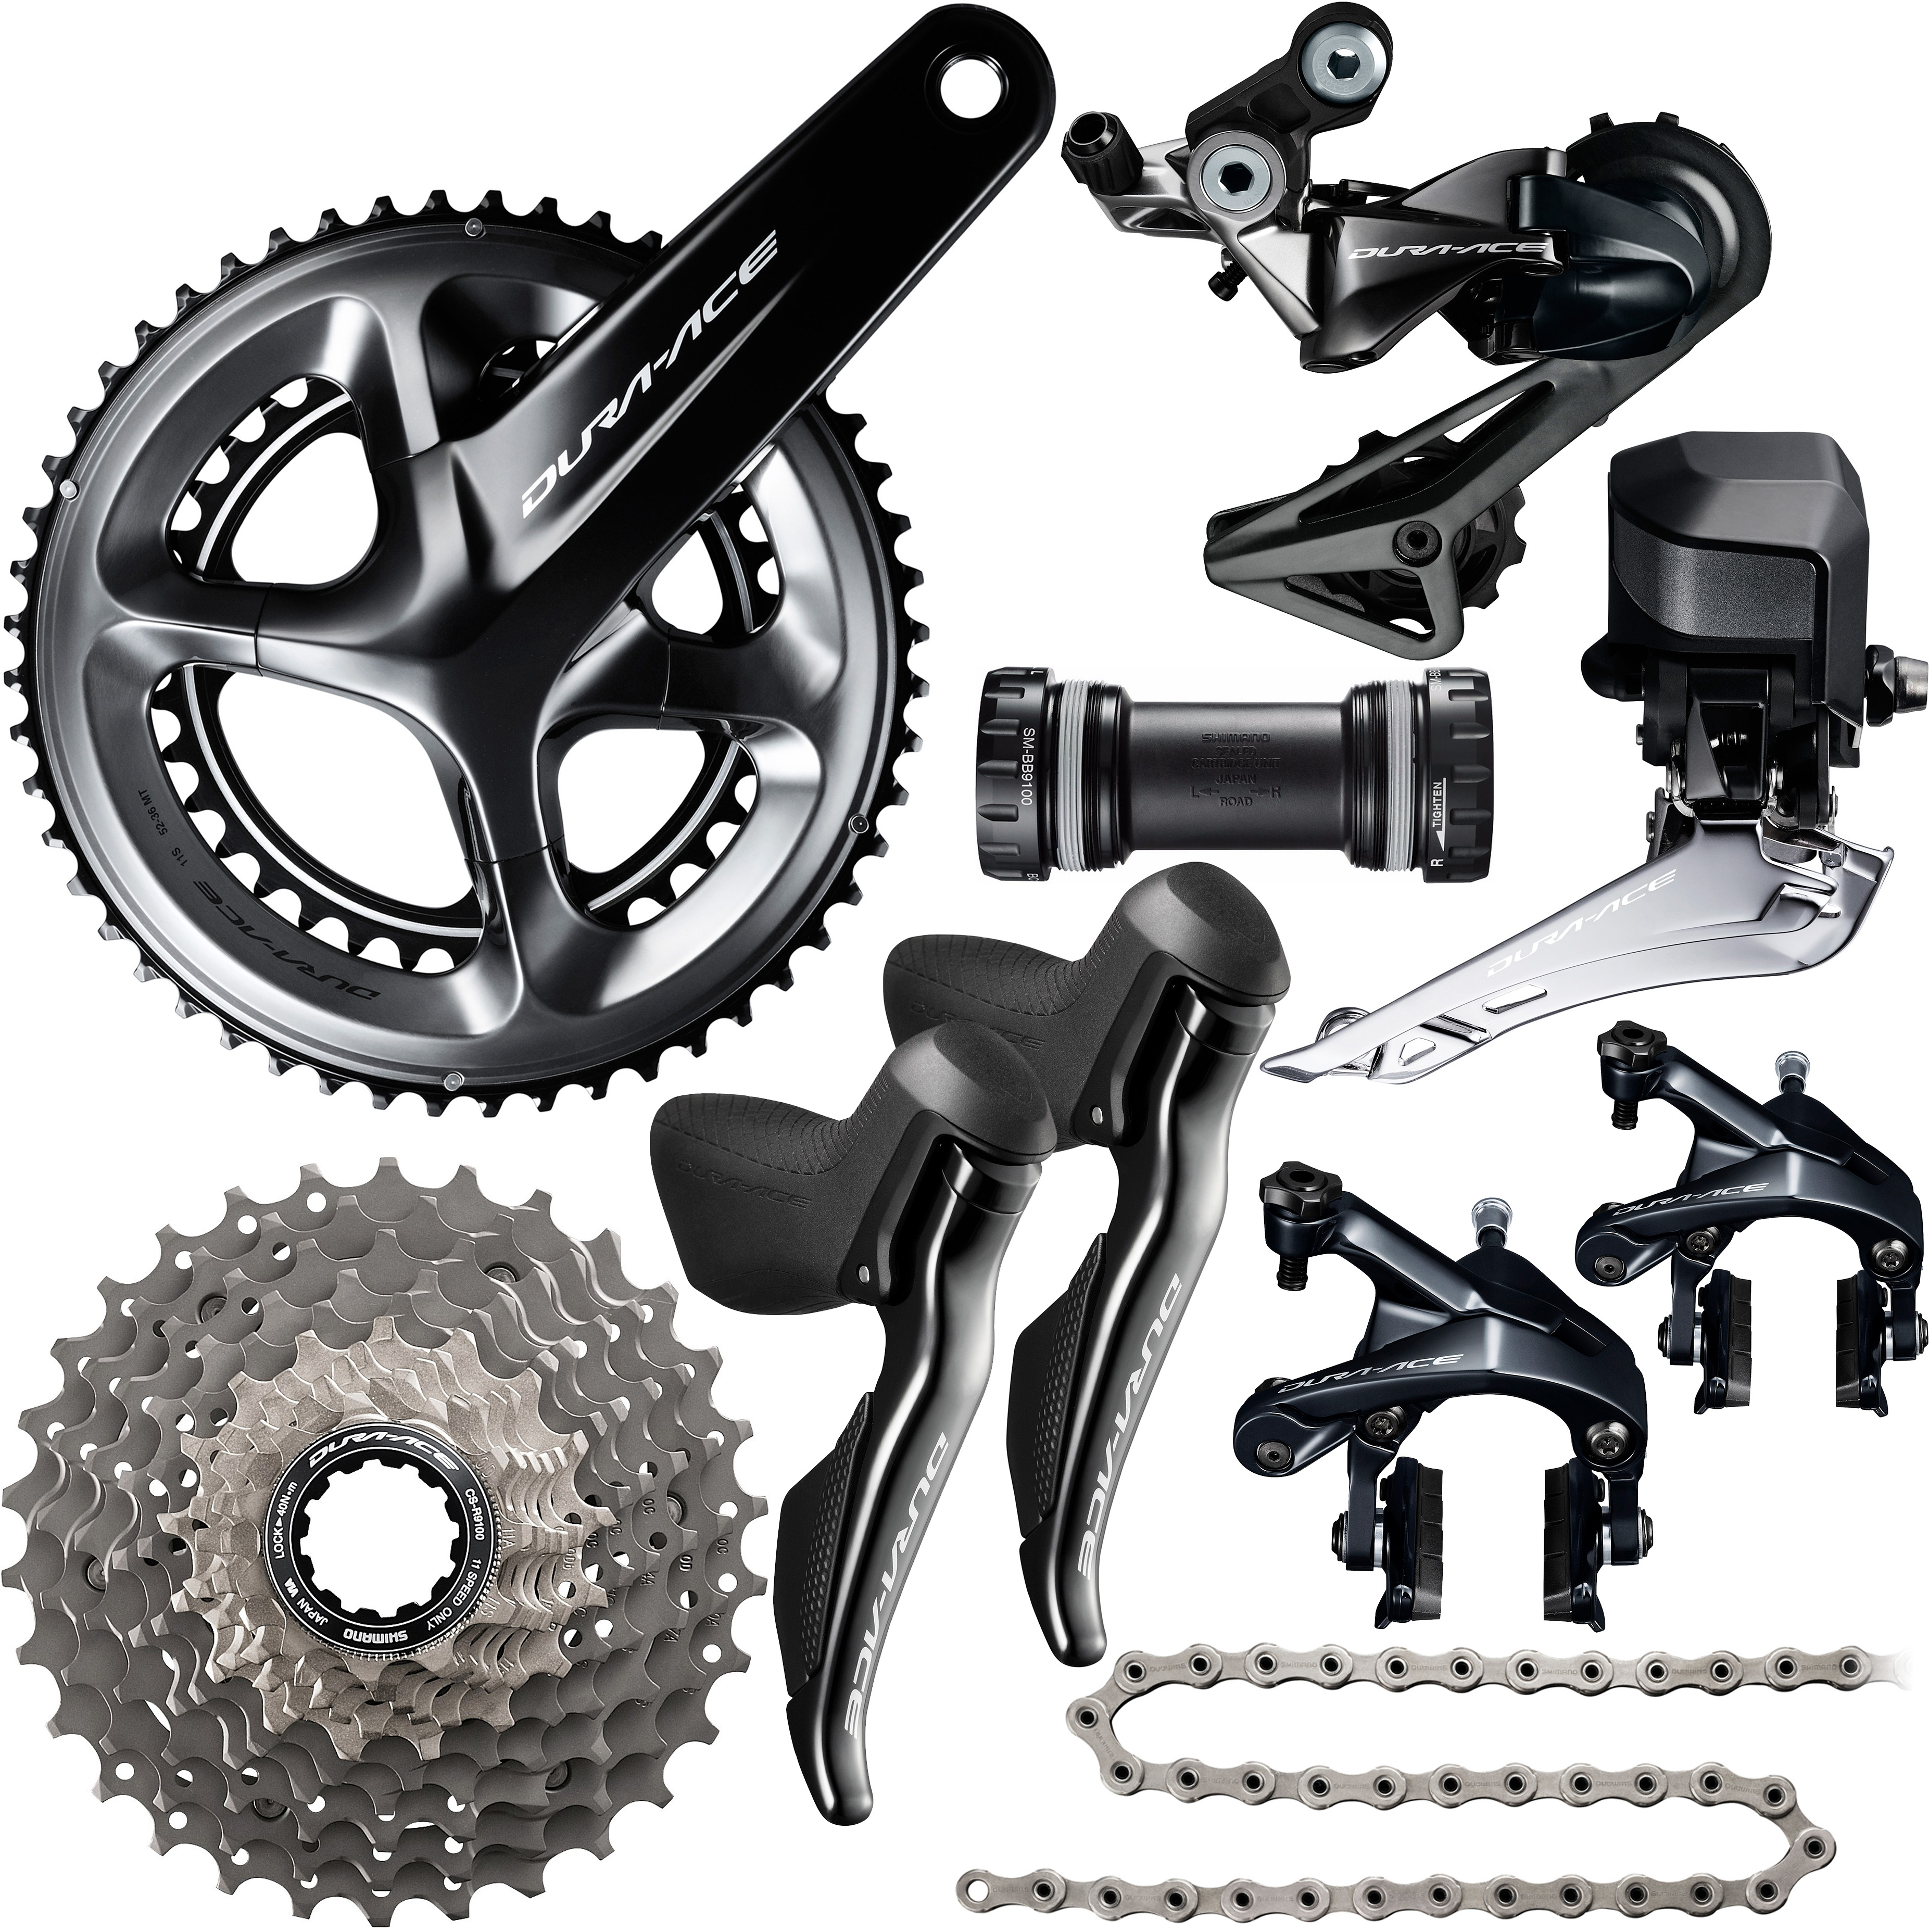 b90dc4a6939 Wiggle | Shimano Dura-Ace R9150 Di2 11 Speed Groupset | Groupsets